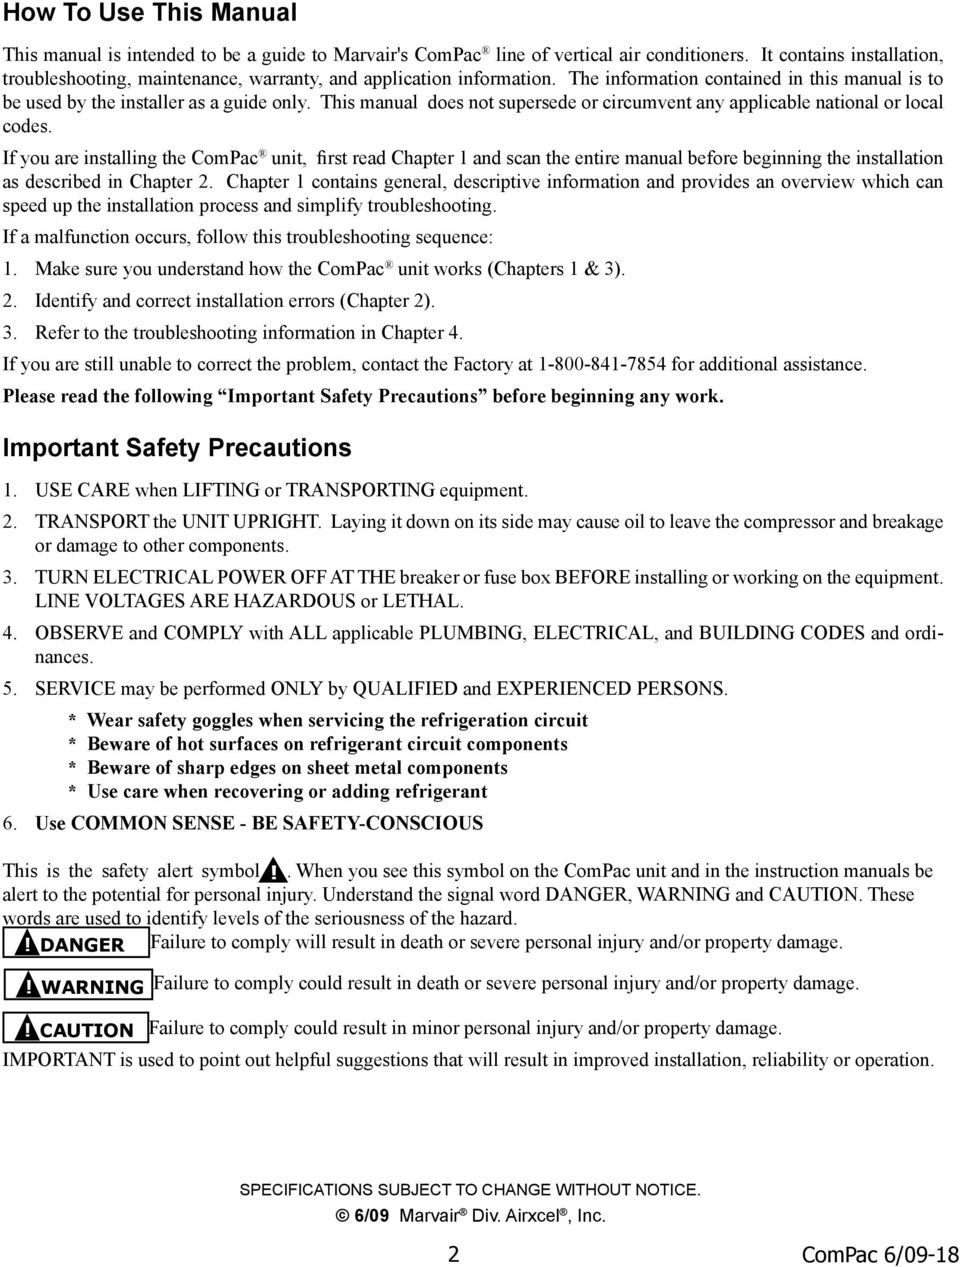 ComPac I and ComPac II Air Conditioner Product Manual - PDF